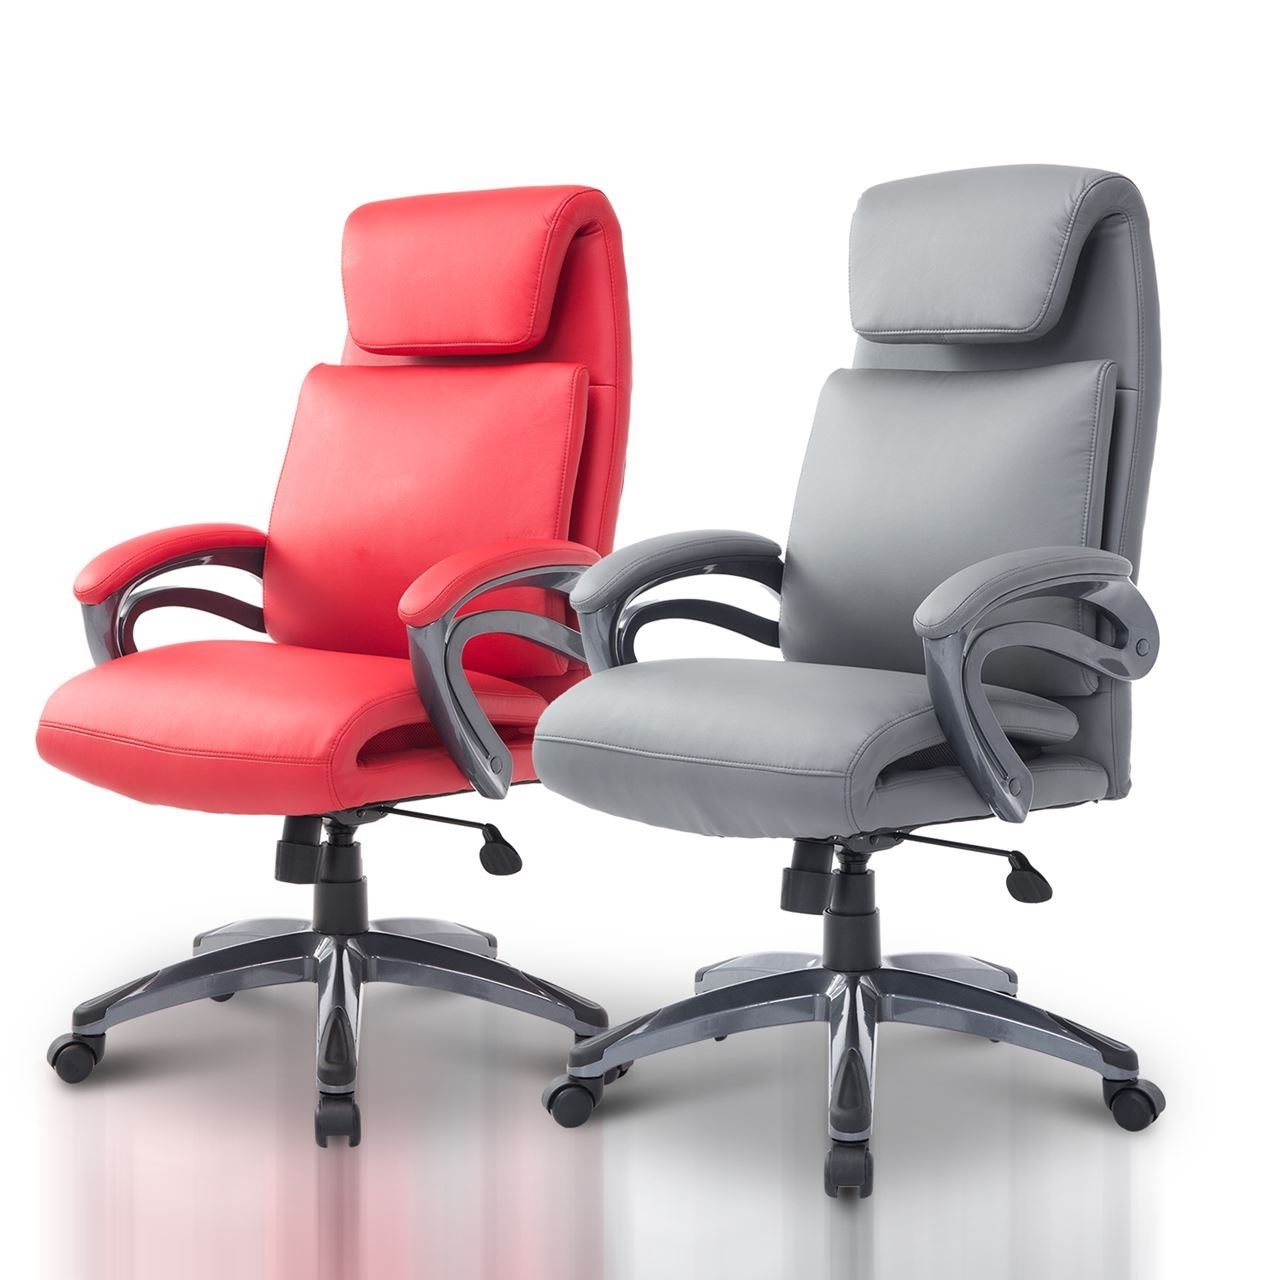 Ergonomic Executive Office Chair Pu Leather Throughout Current Executive Office Swivel Chairs (View 7 of 20)